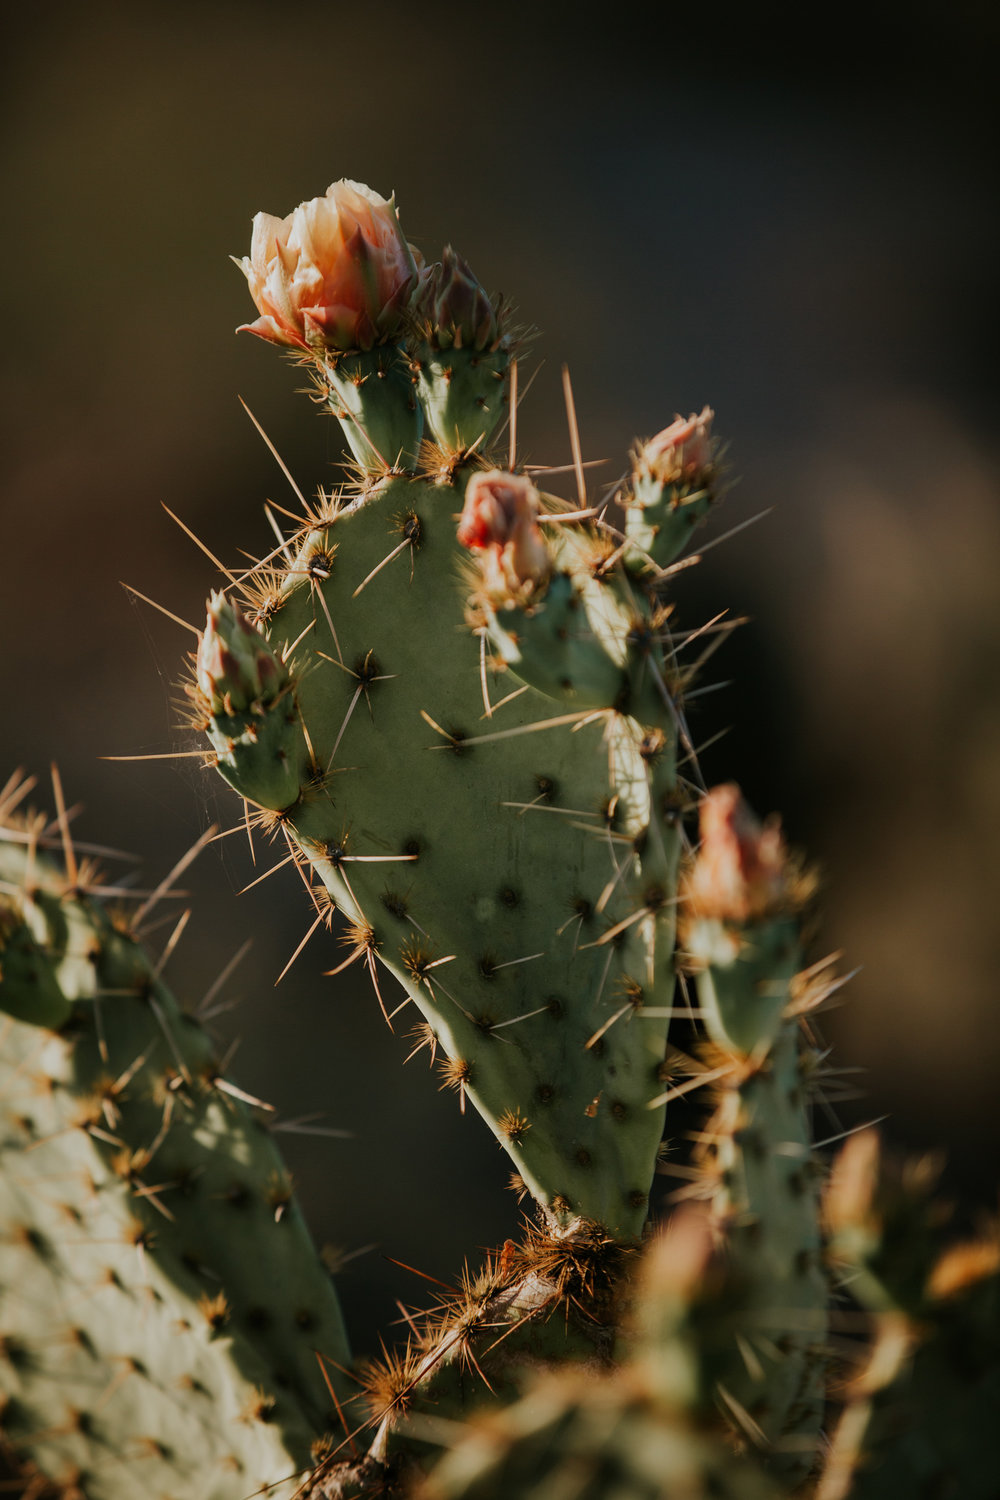 CindyGiovagnoli_Tucson_Arizona_Saguaro_National_Park_cactus_sunset_blooming_spring_sunset_petroglyphs_Native_American_indigenous-003.jpg